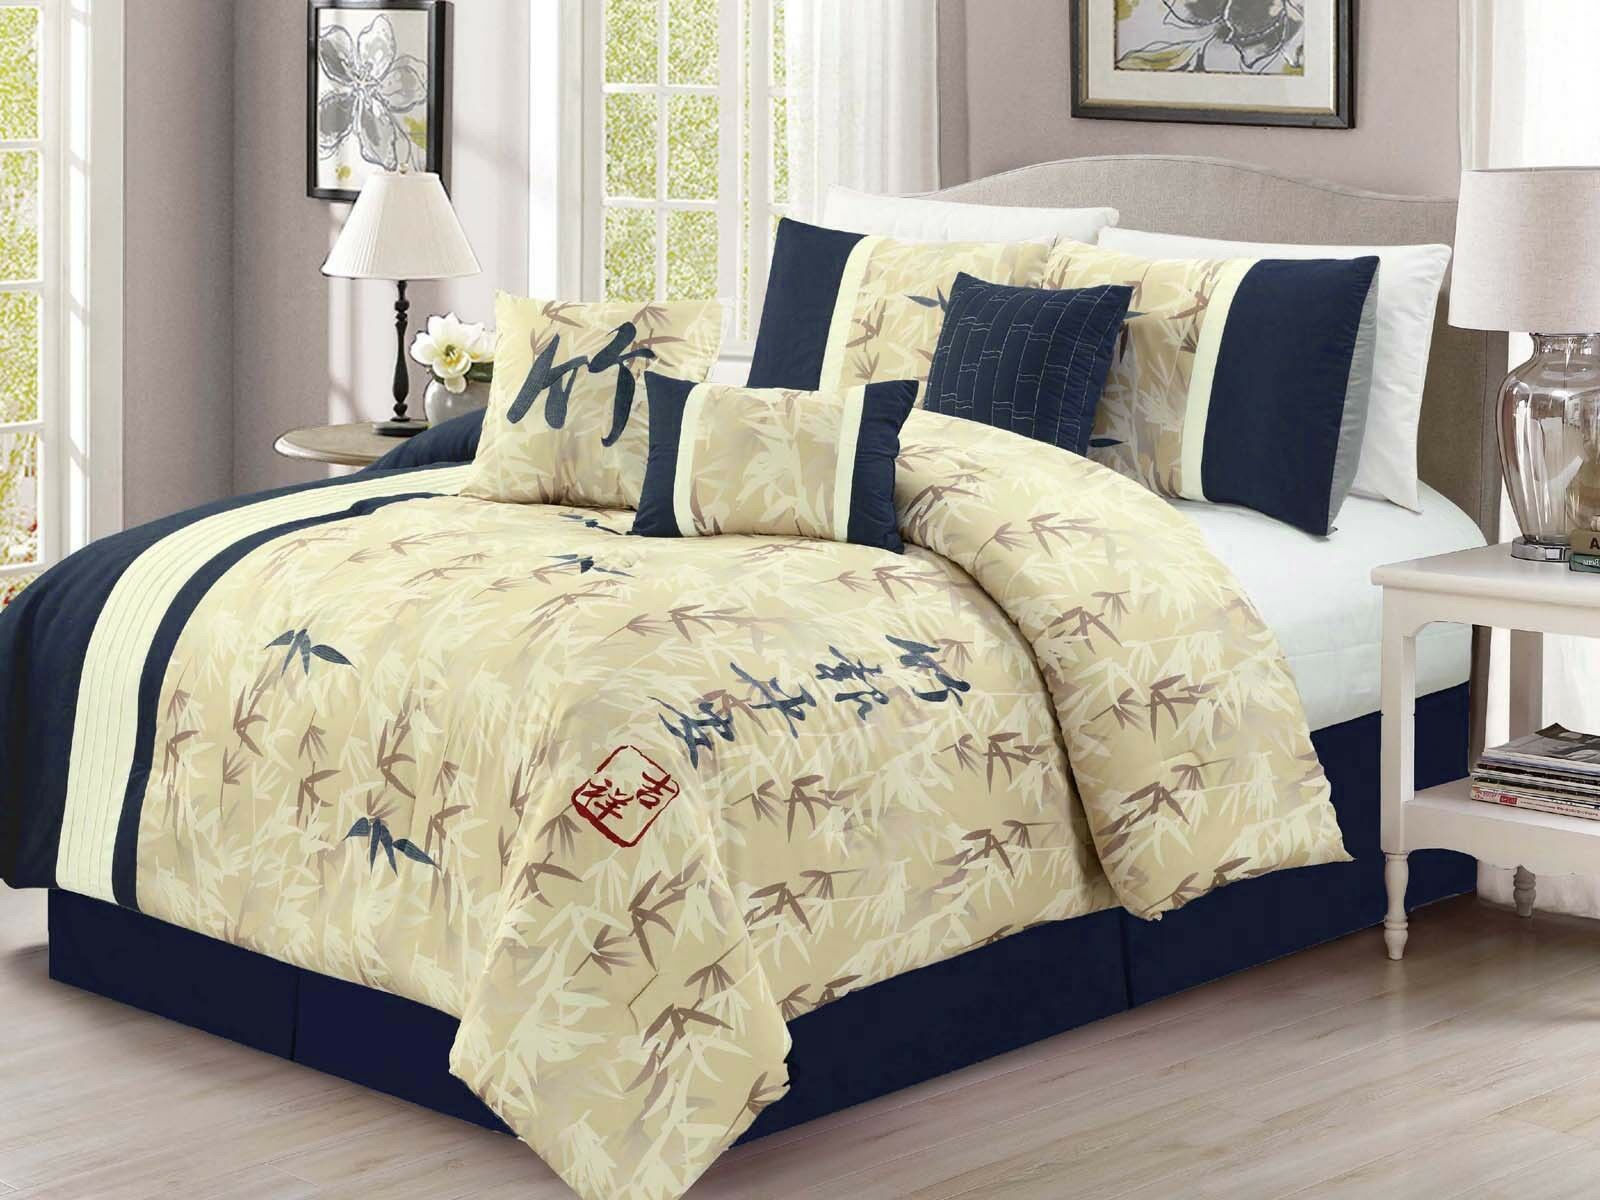 7-P Bamboo Forest Auspicious Kanji Character Comforter Set Blau Beige Ivory King